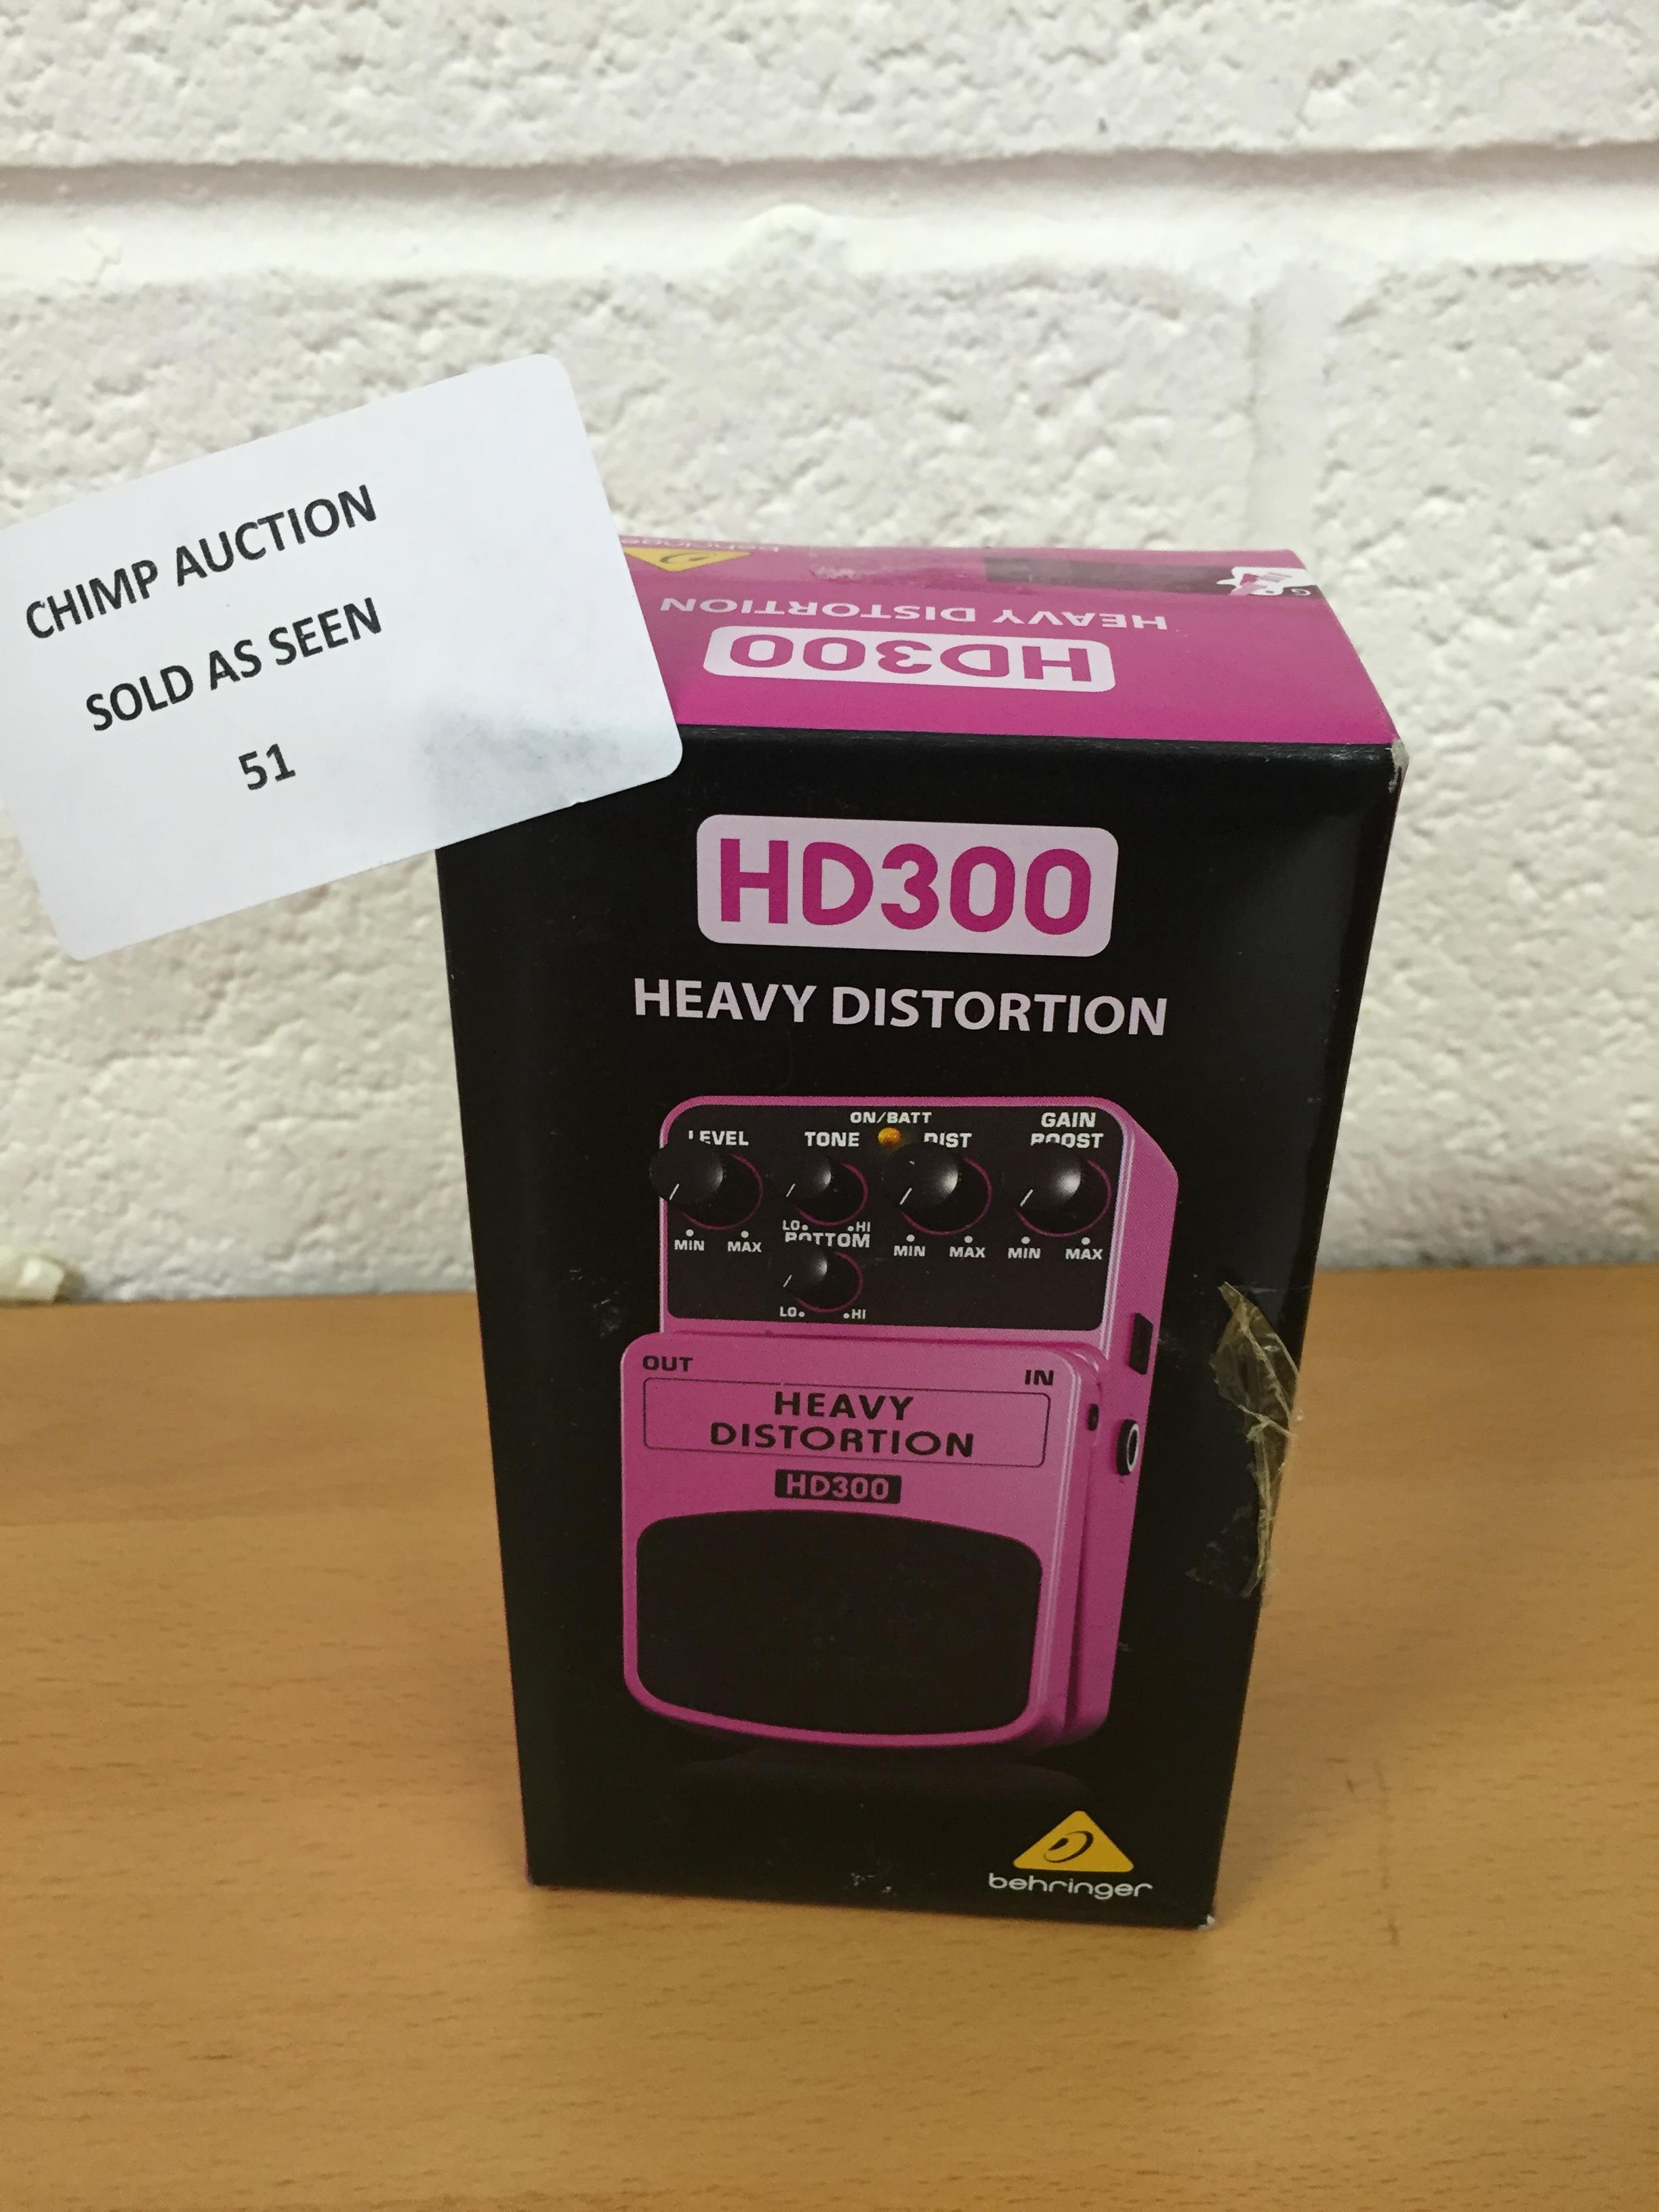 Lot 51 - Behringer HD-300 Heavy Distortion